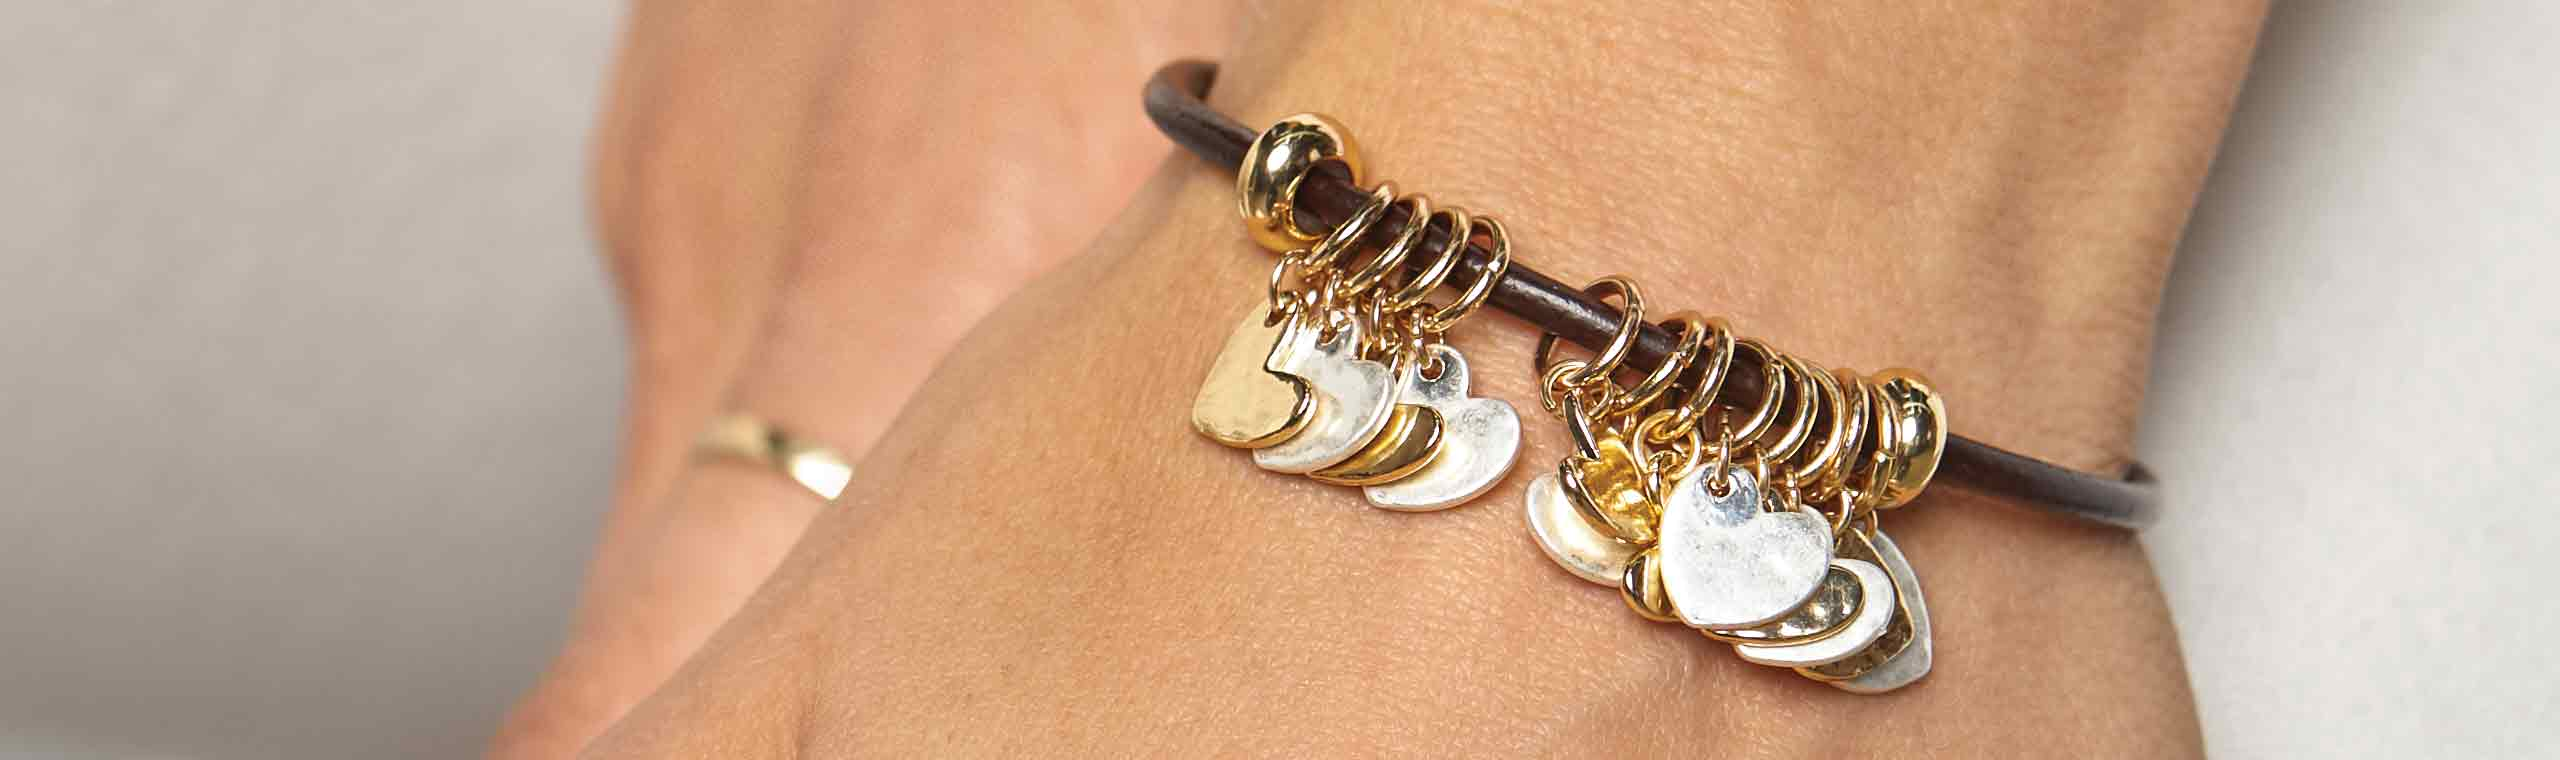 a black bracelet with many heart charms on the ring on a womans wrist